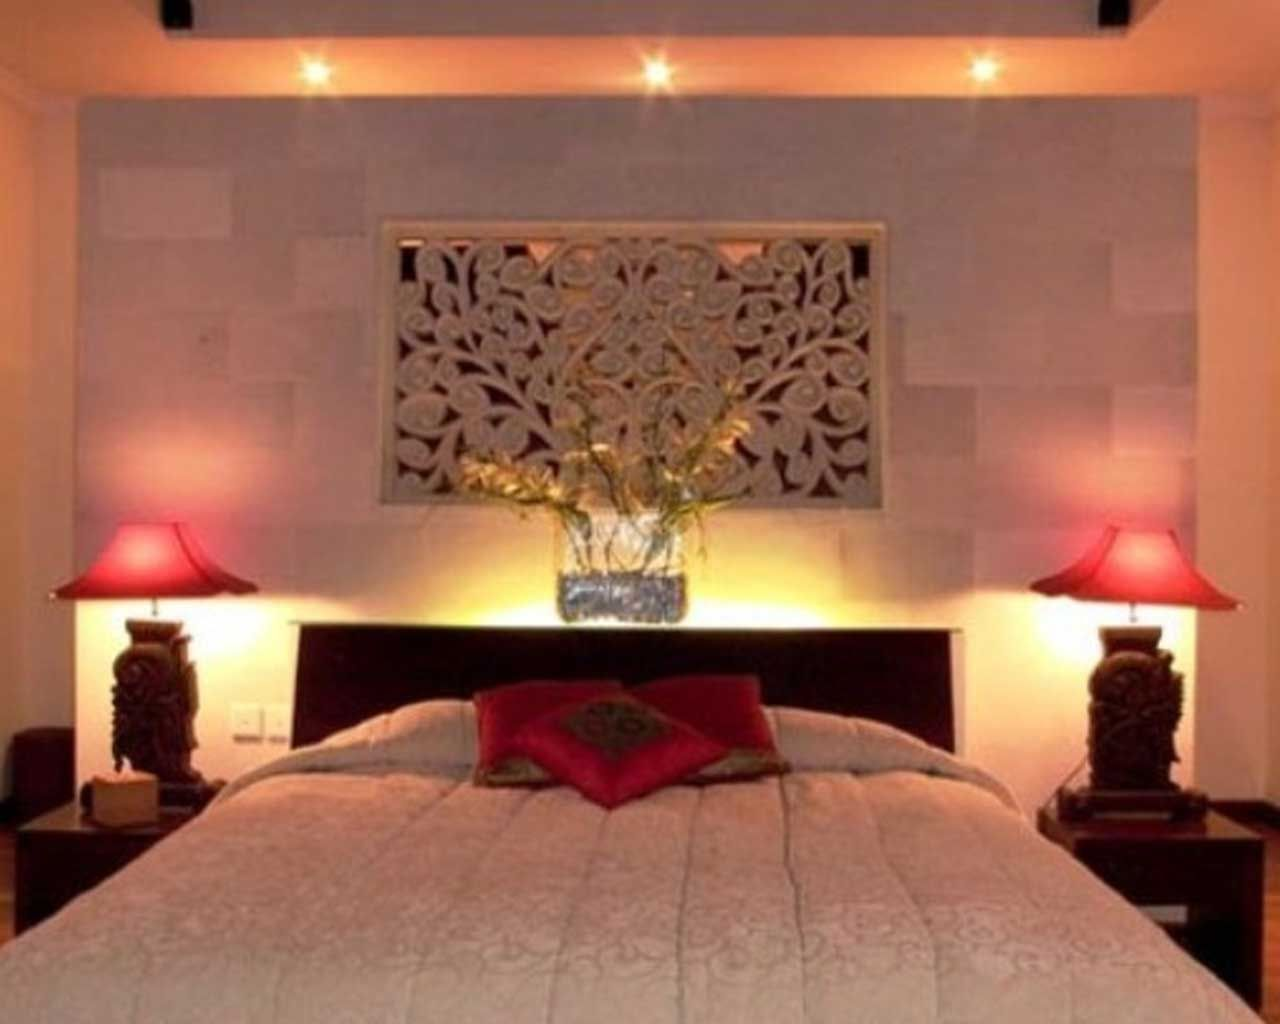 Simple bedroom lights - Romantic Bedroom Decor Ideas Best Romantic Bedroom Lighting Ideas Hot Style Design